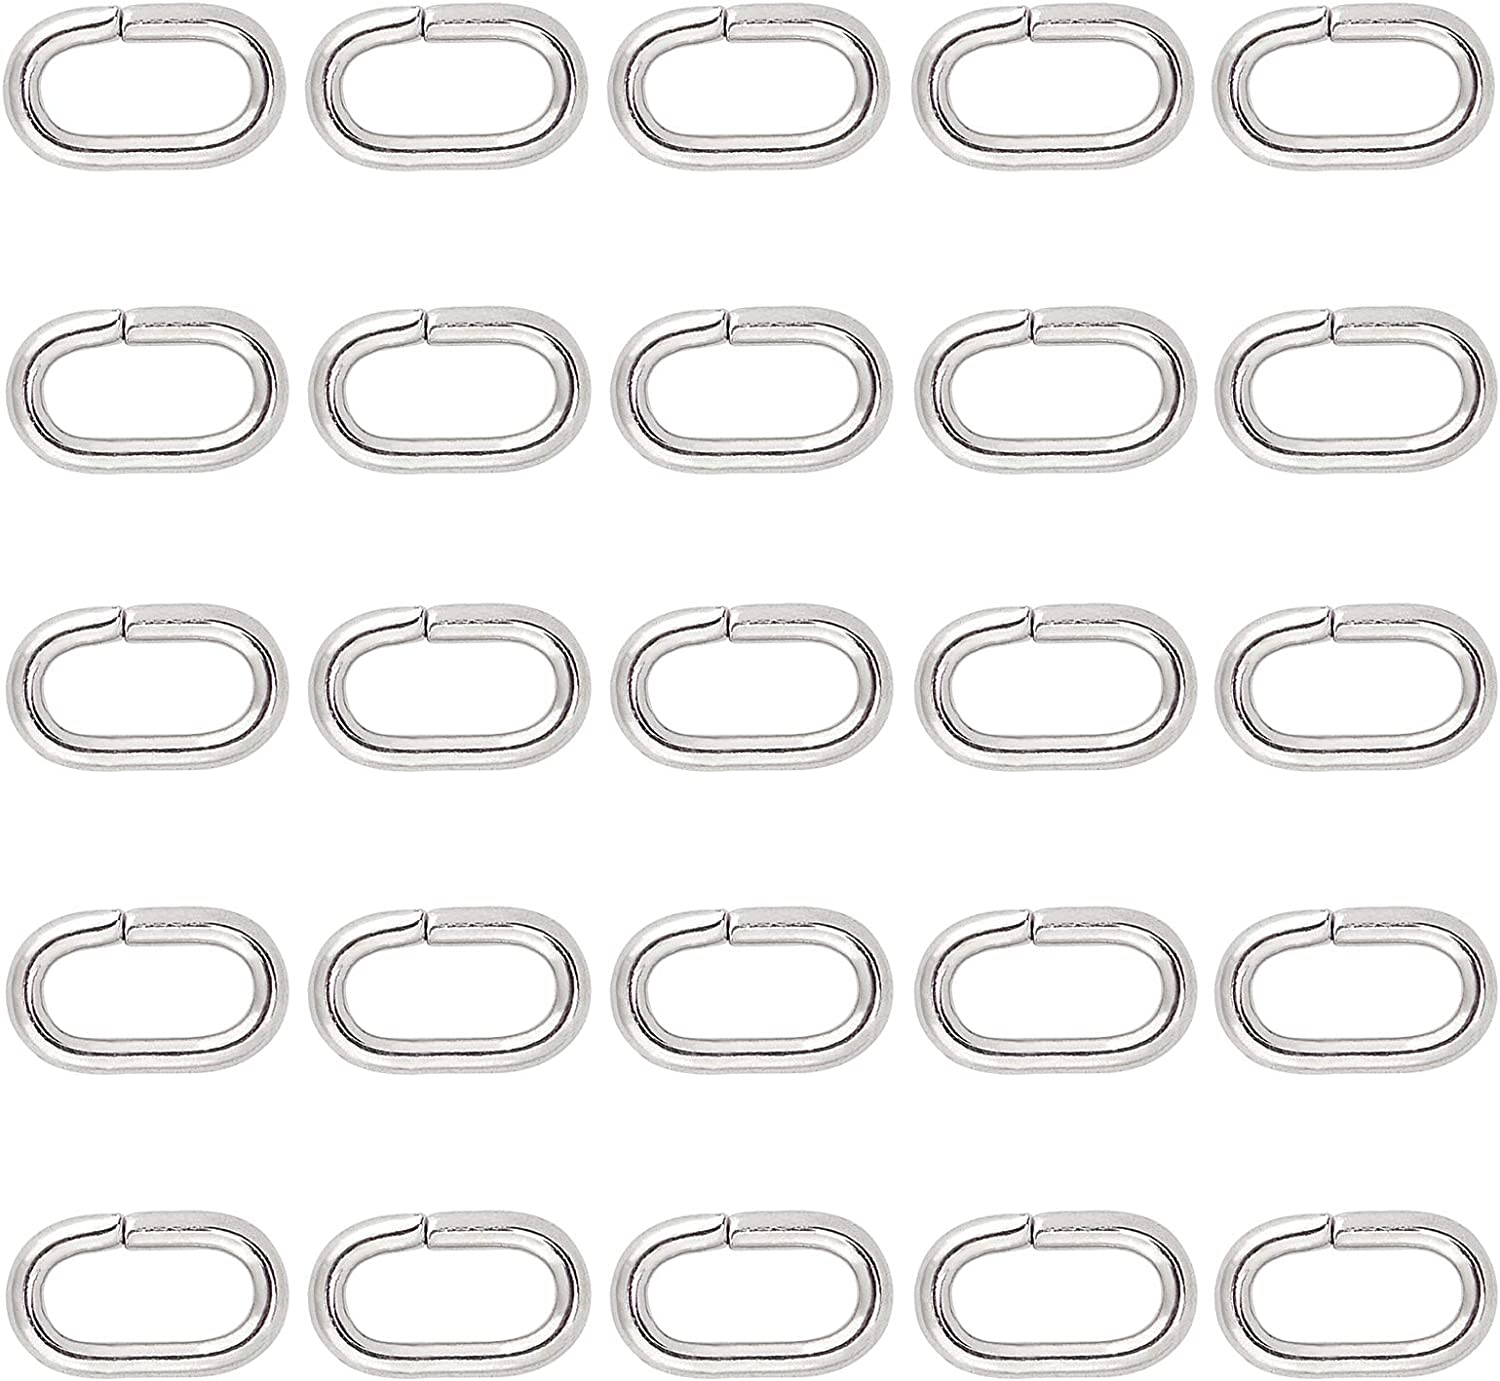 PandaHall About 200pcs Iron Oval Open Jump for Sale special price Max 61% OFF Ne Rings Bracelet